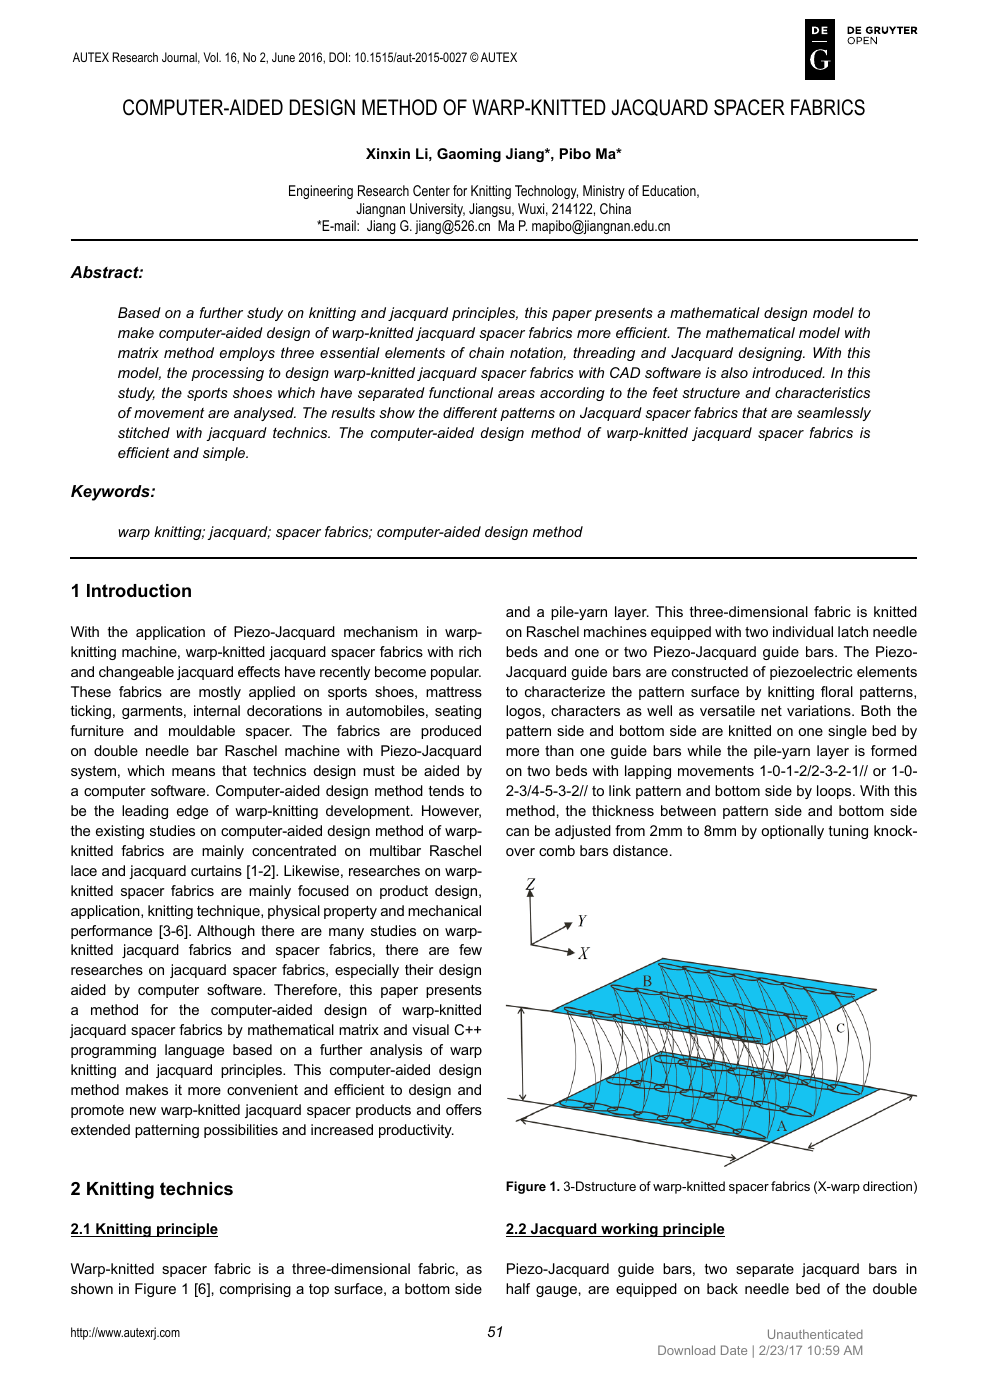 Computer Aided Design Method Of Warp Knitted Jacquard Spacer Fabrics Topic Of Research Paper In Mechanical Engineering Download Scholarly Article Pdf And Read For Free On Cyberleninka Open Science Hub